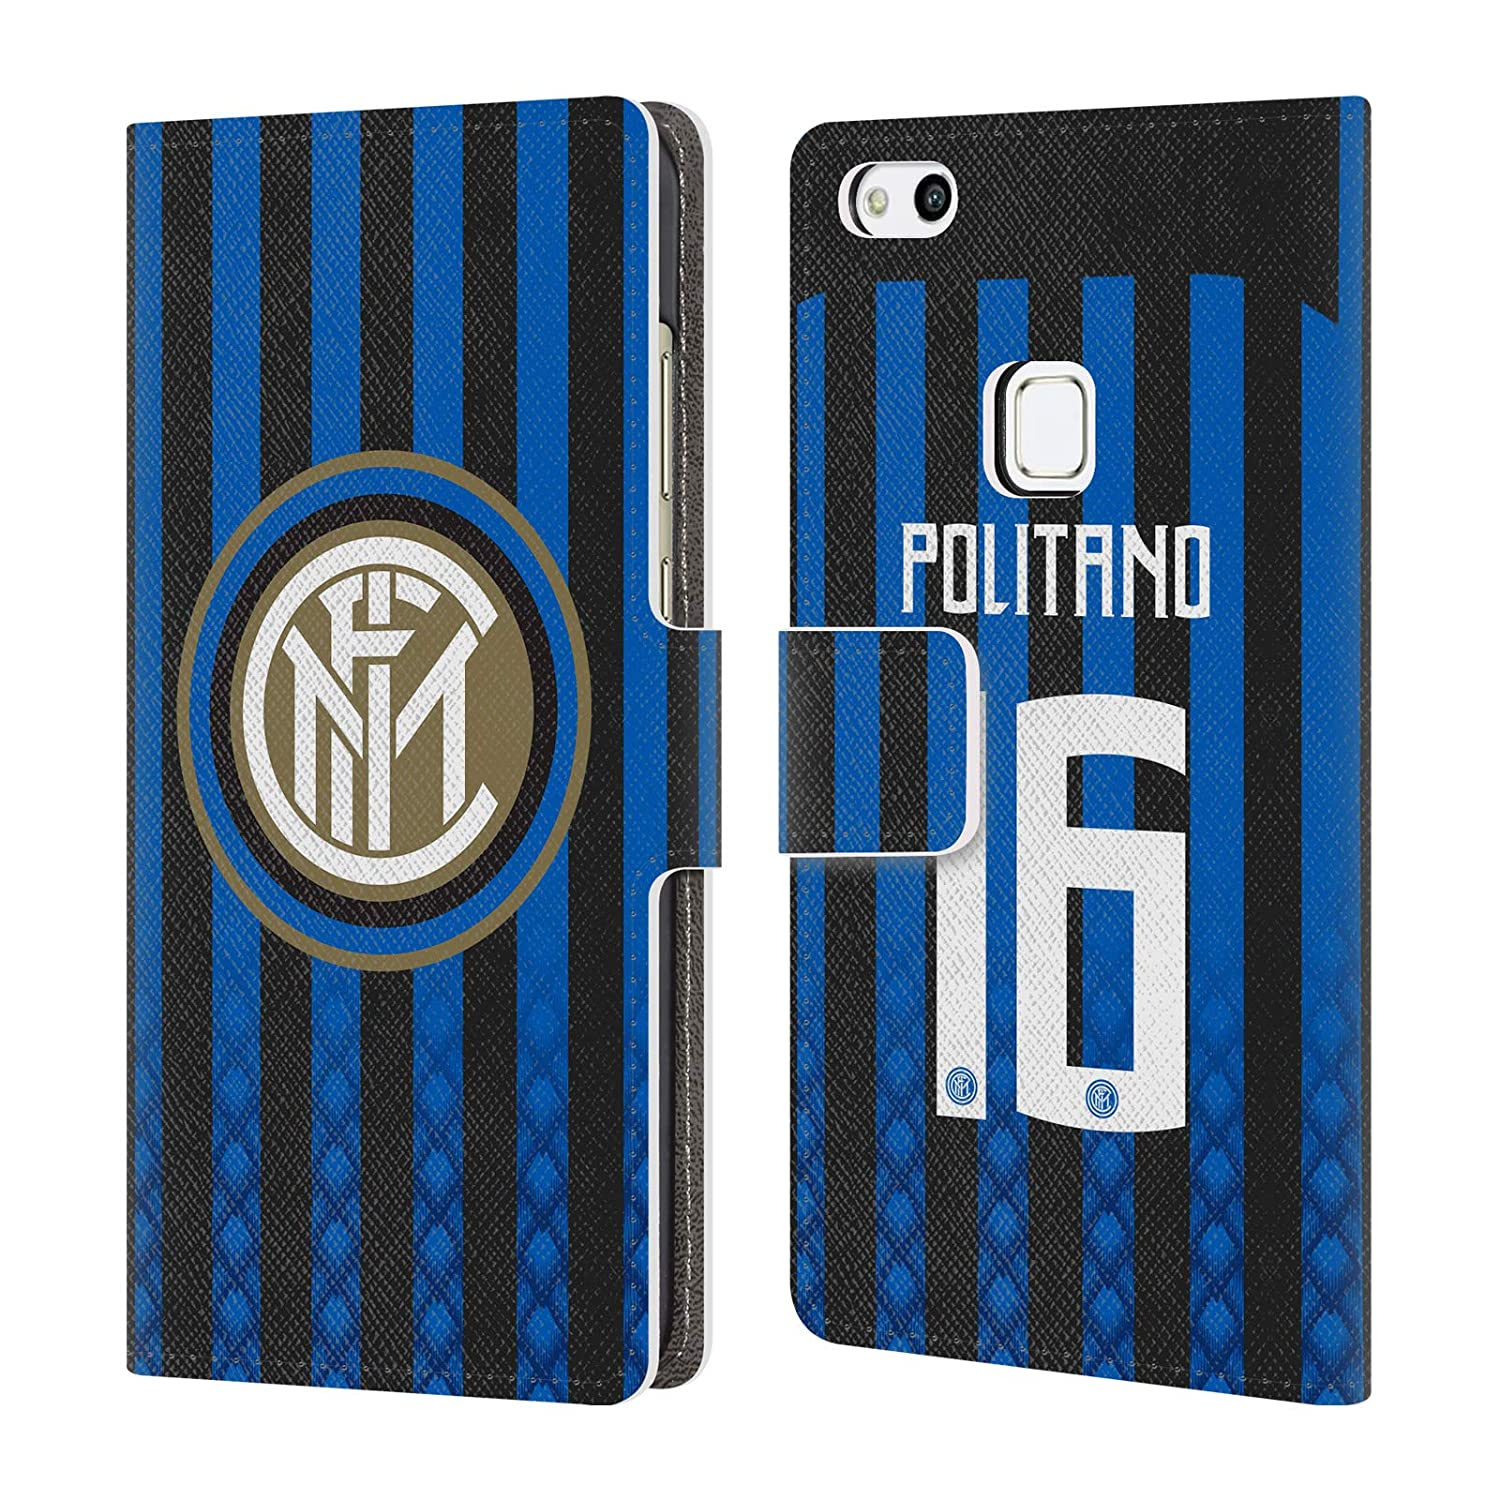 cover huawei p10 lite inter